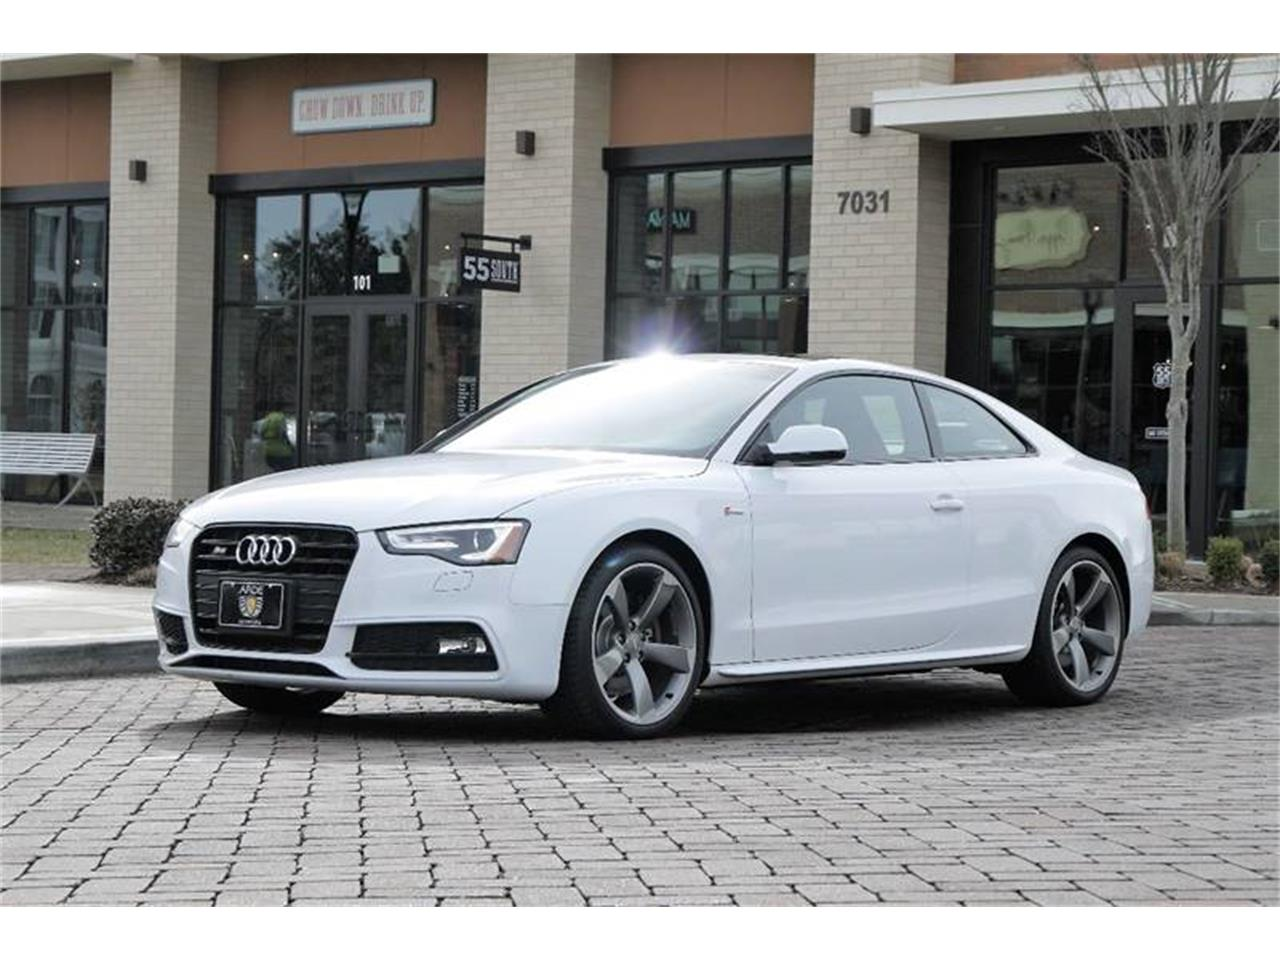 Large Picture of '15 Audi S5 located in Brentwood Tennessee - $45,800.00 - MOD5